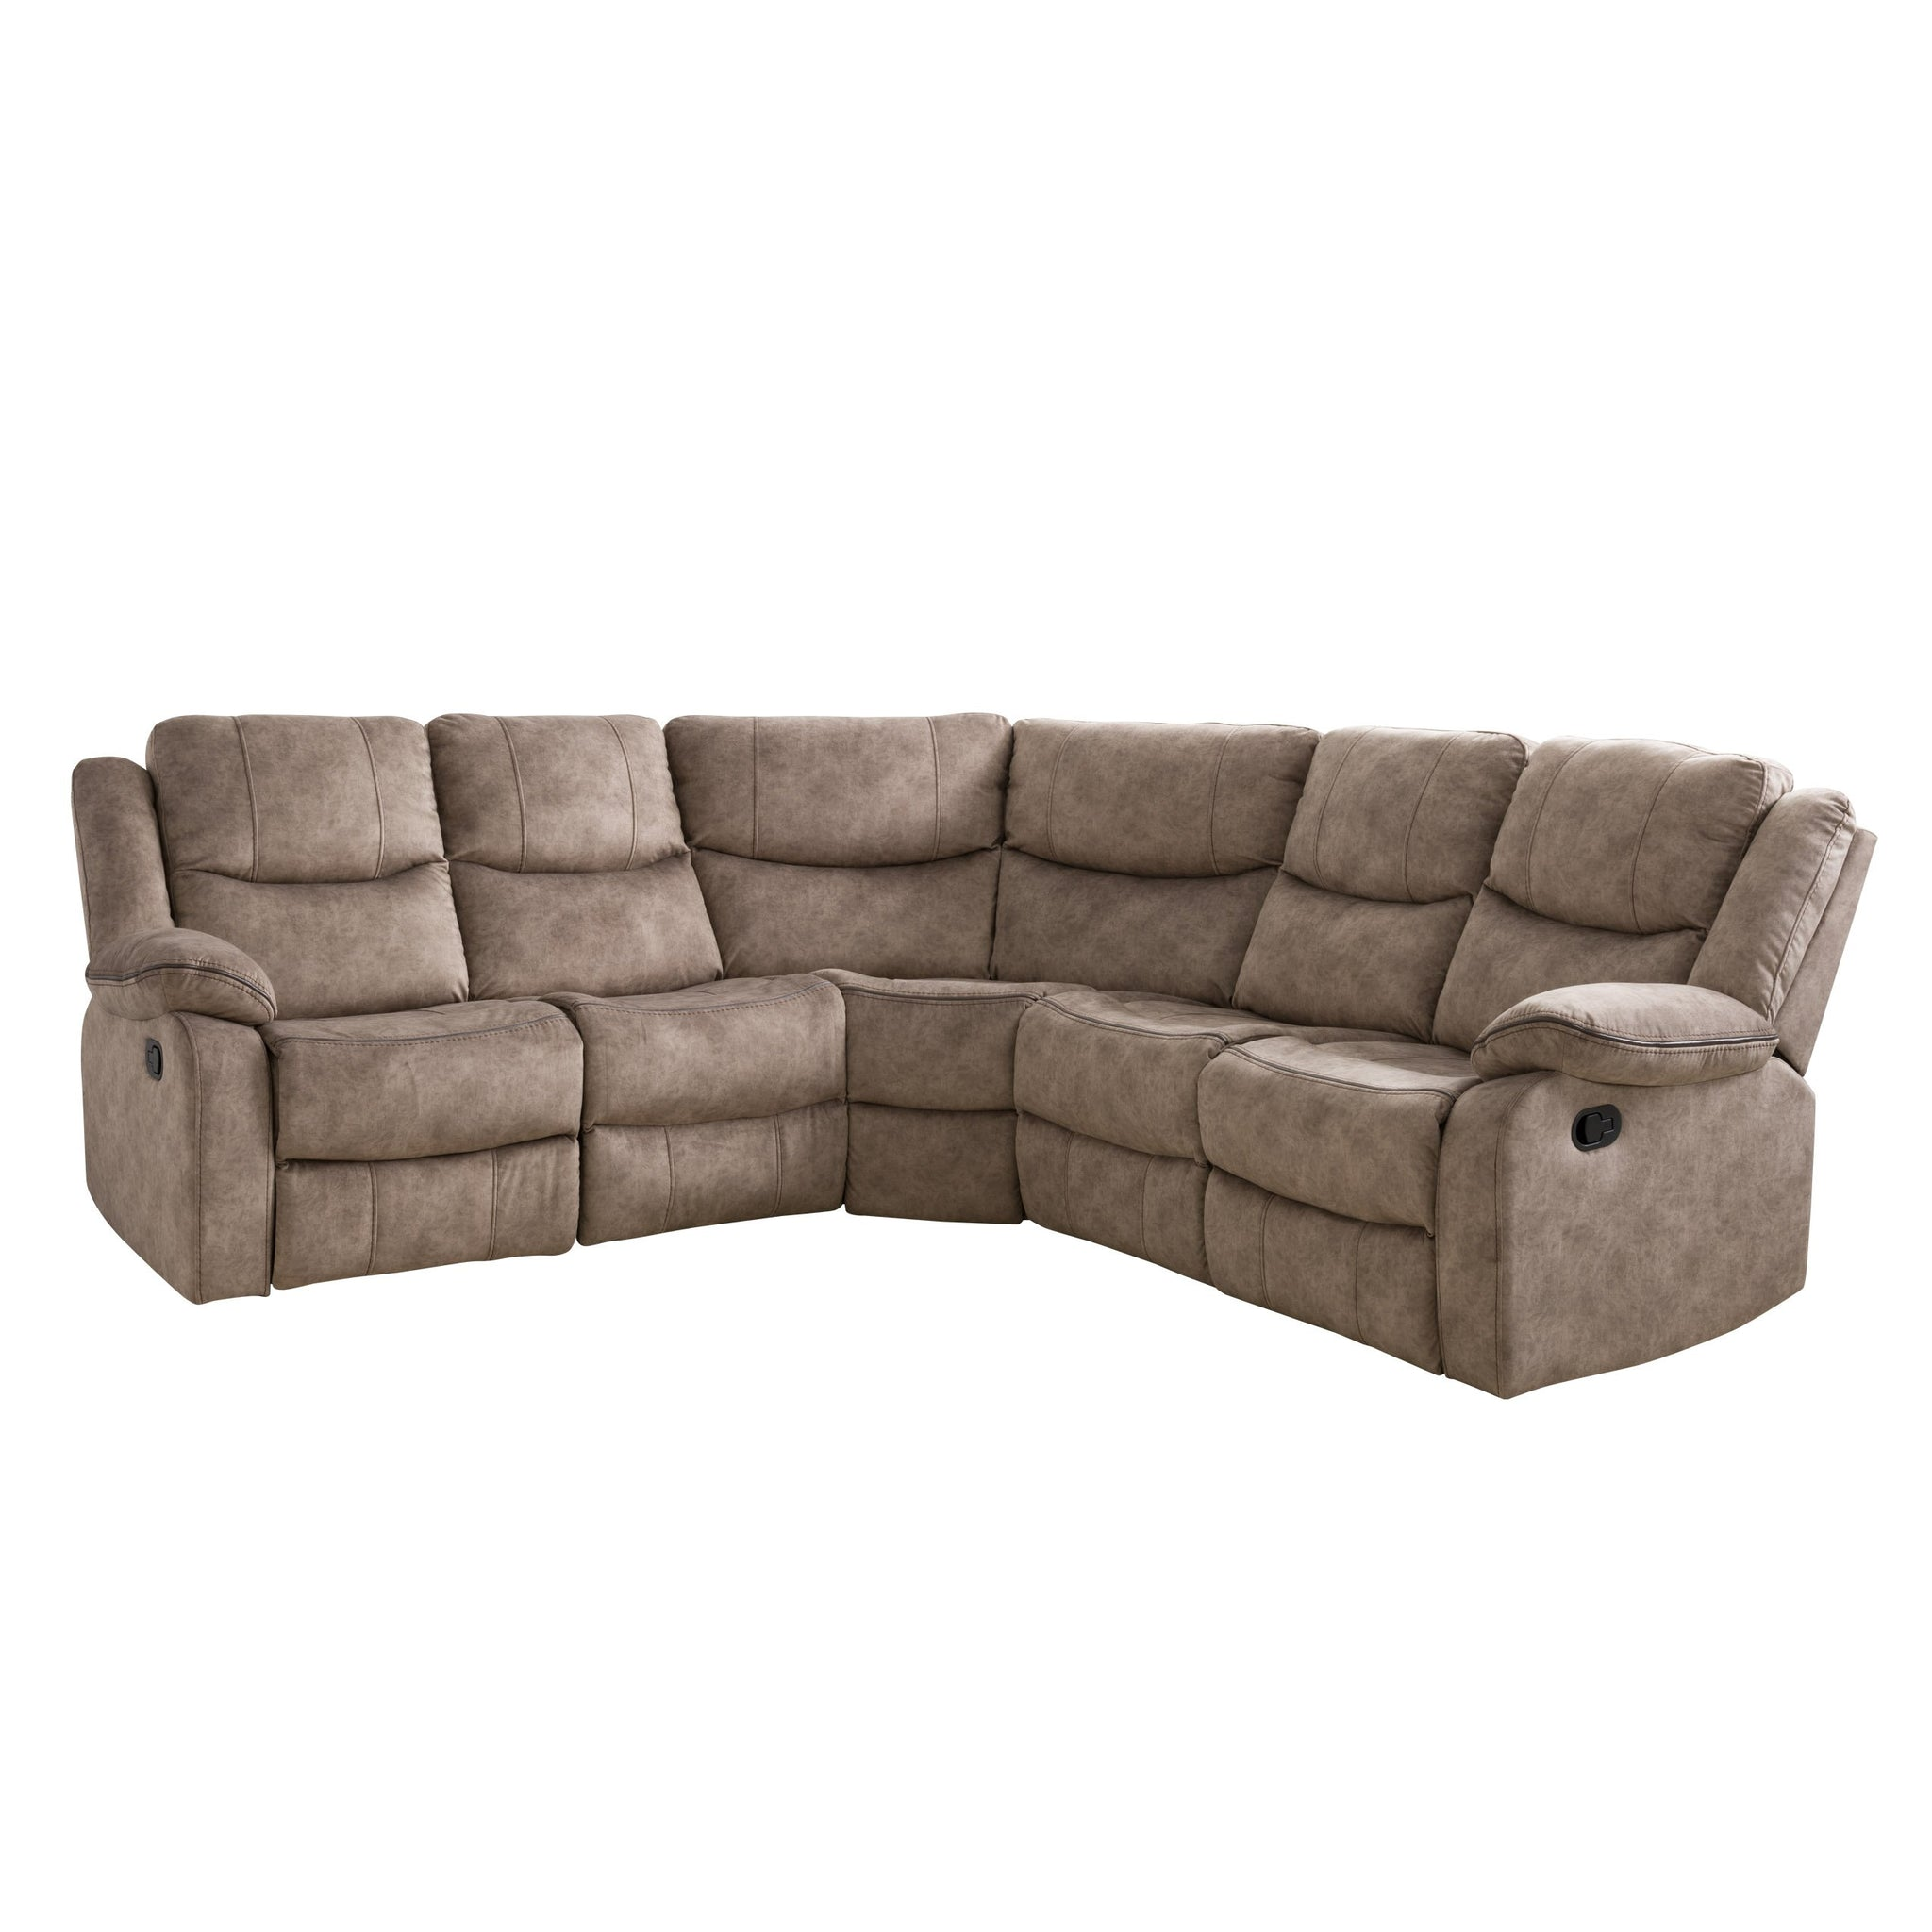 5pc Curved Modular Reclining Sofa Sectional Fabric